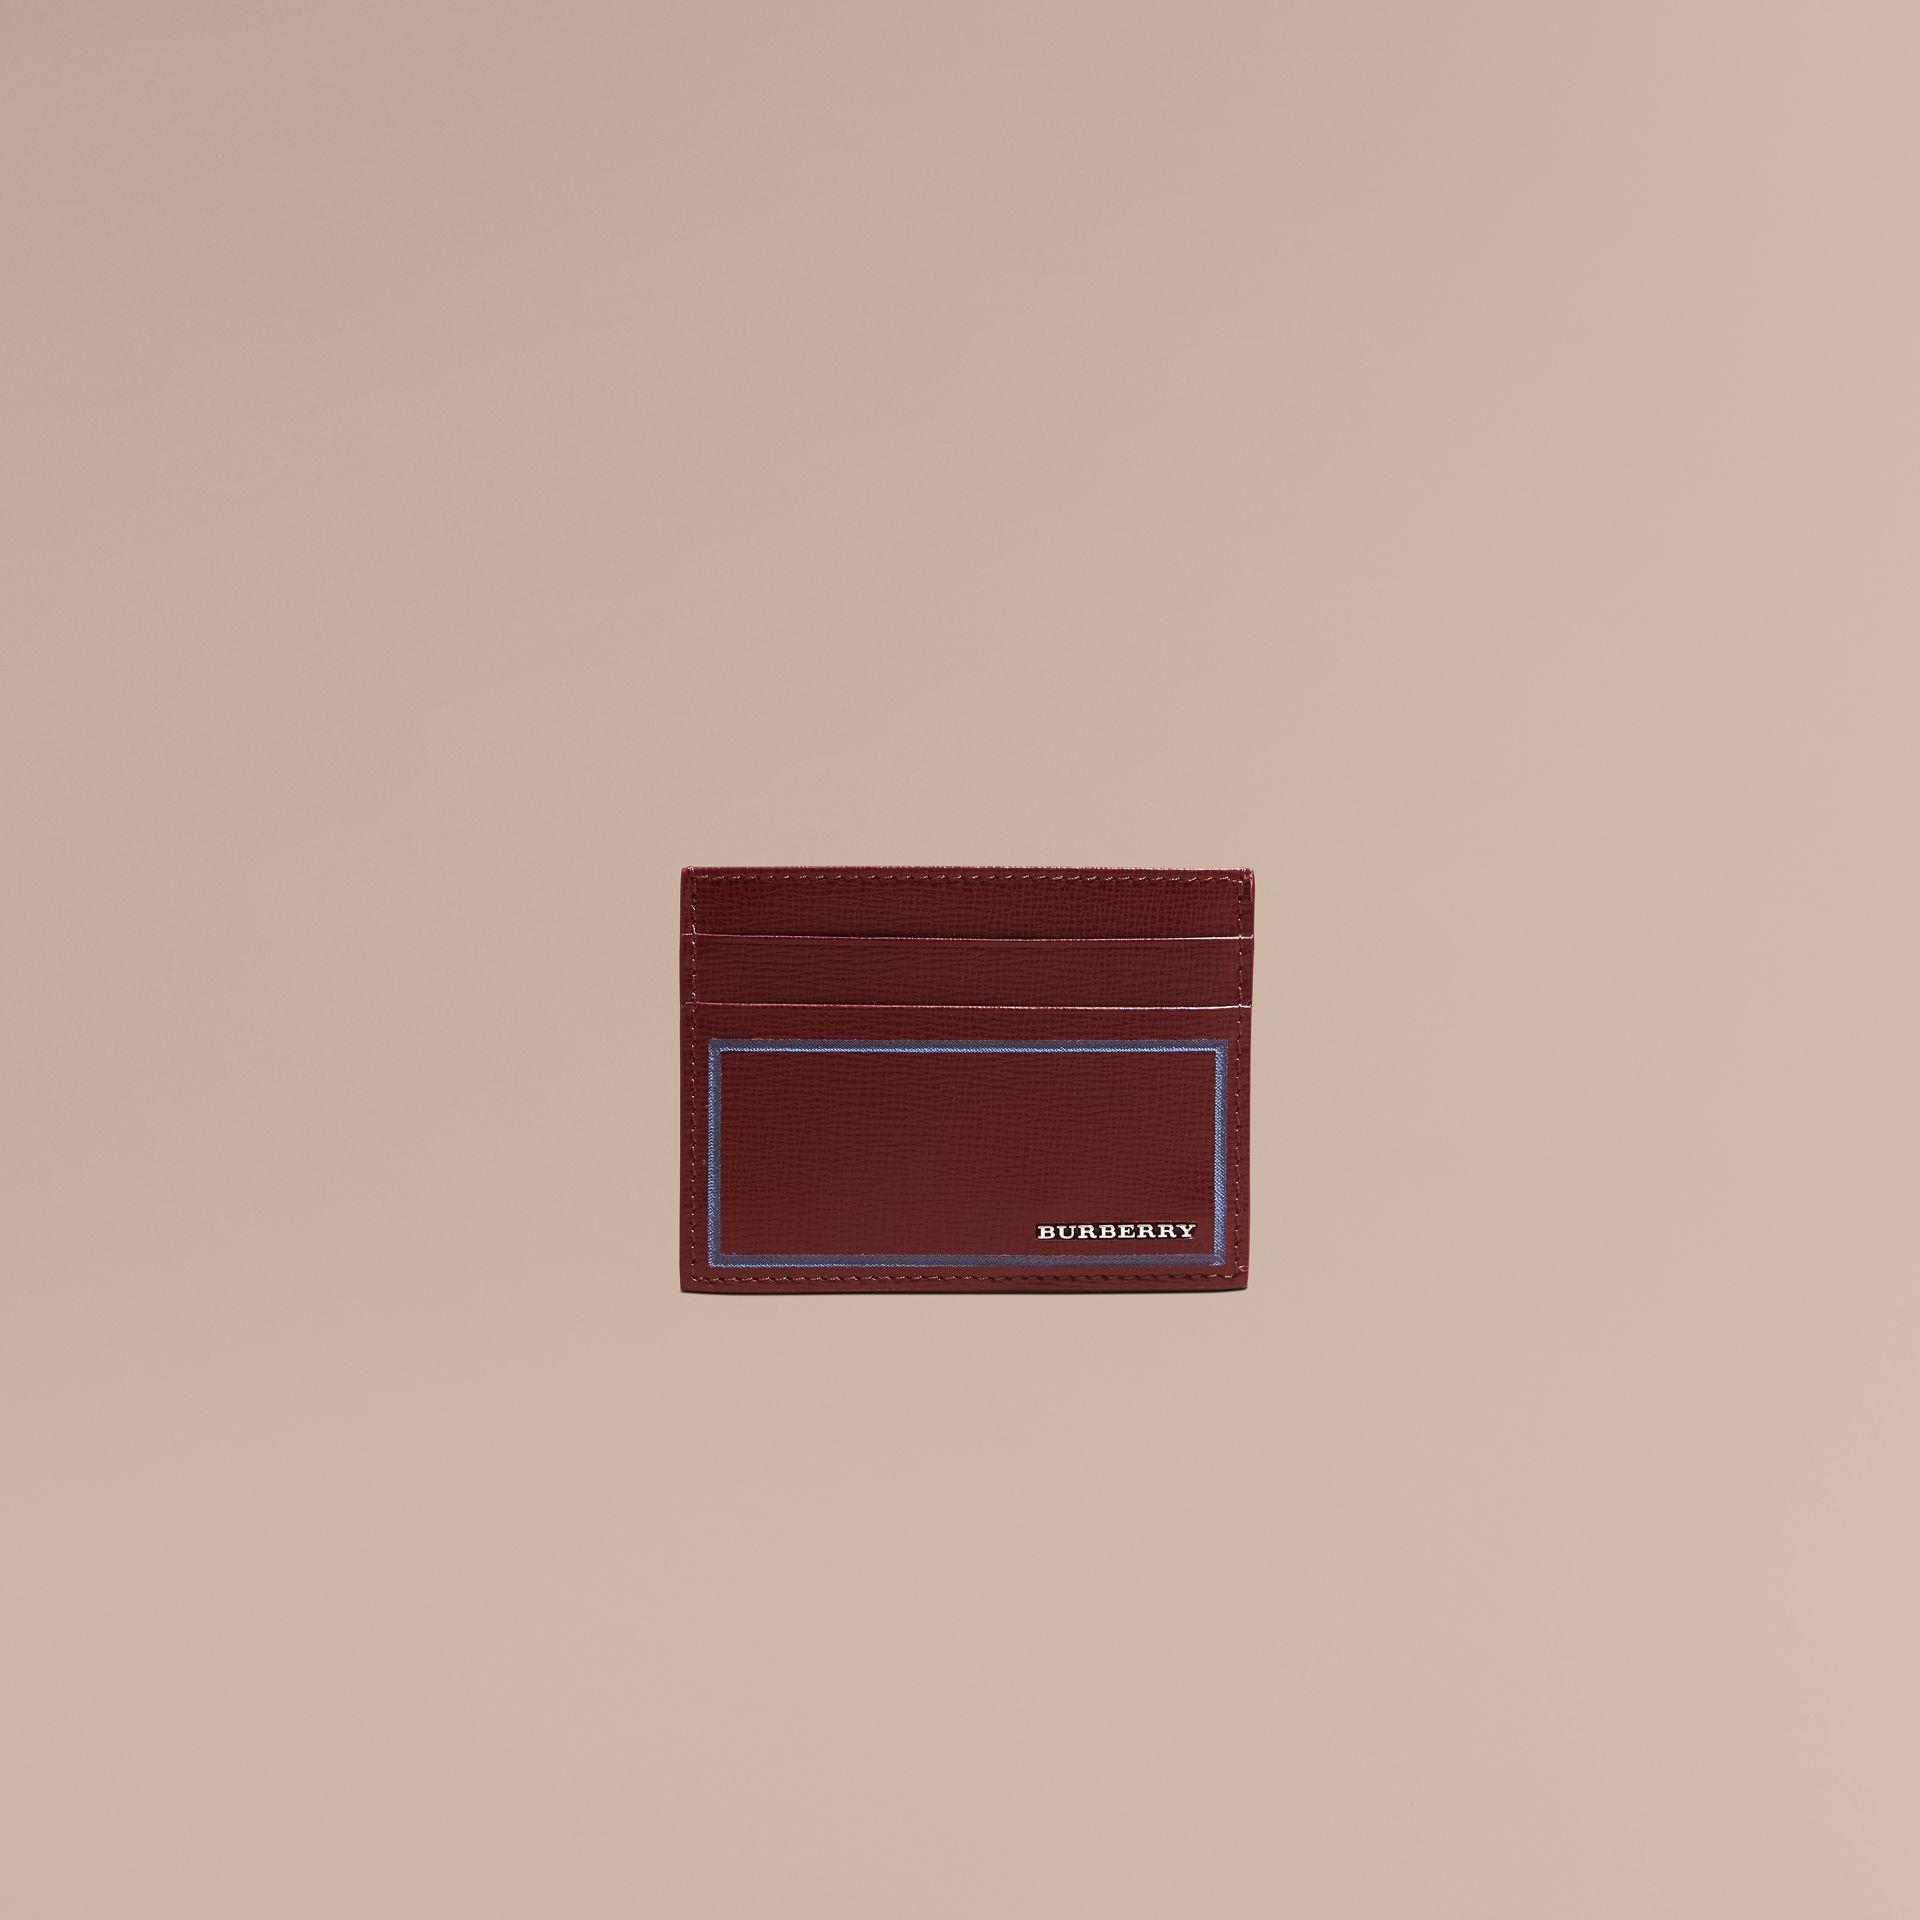 Border Detail London Leather Card Case in Burgundy Red - gallery image 2